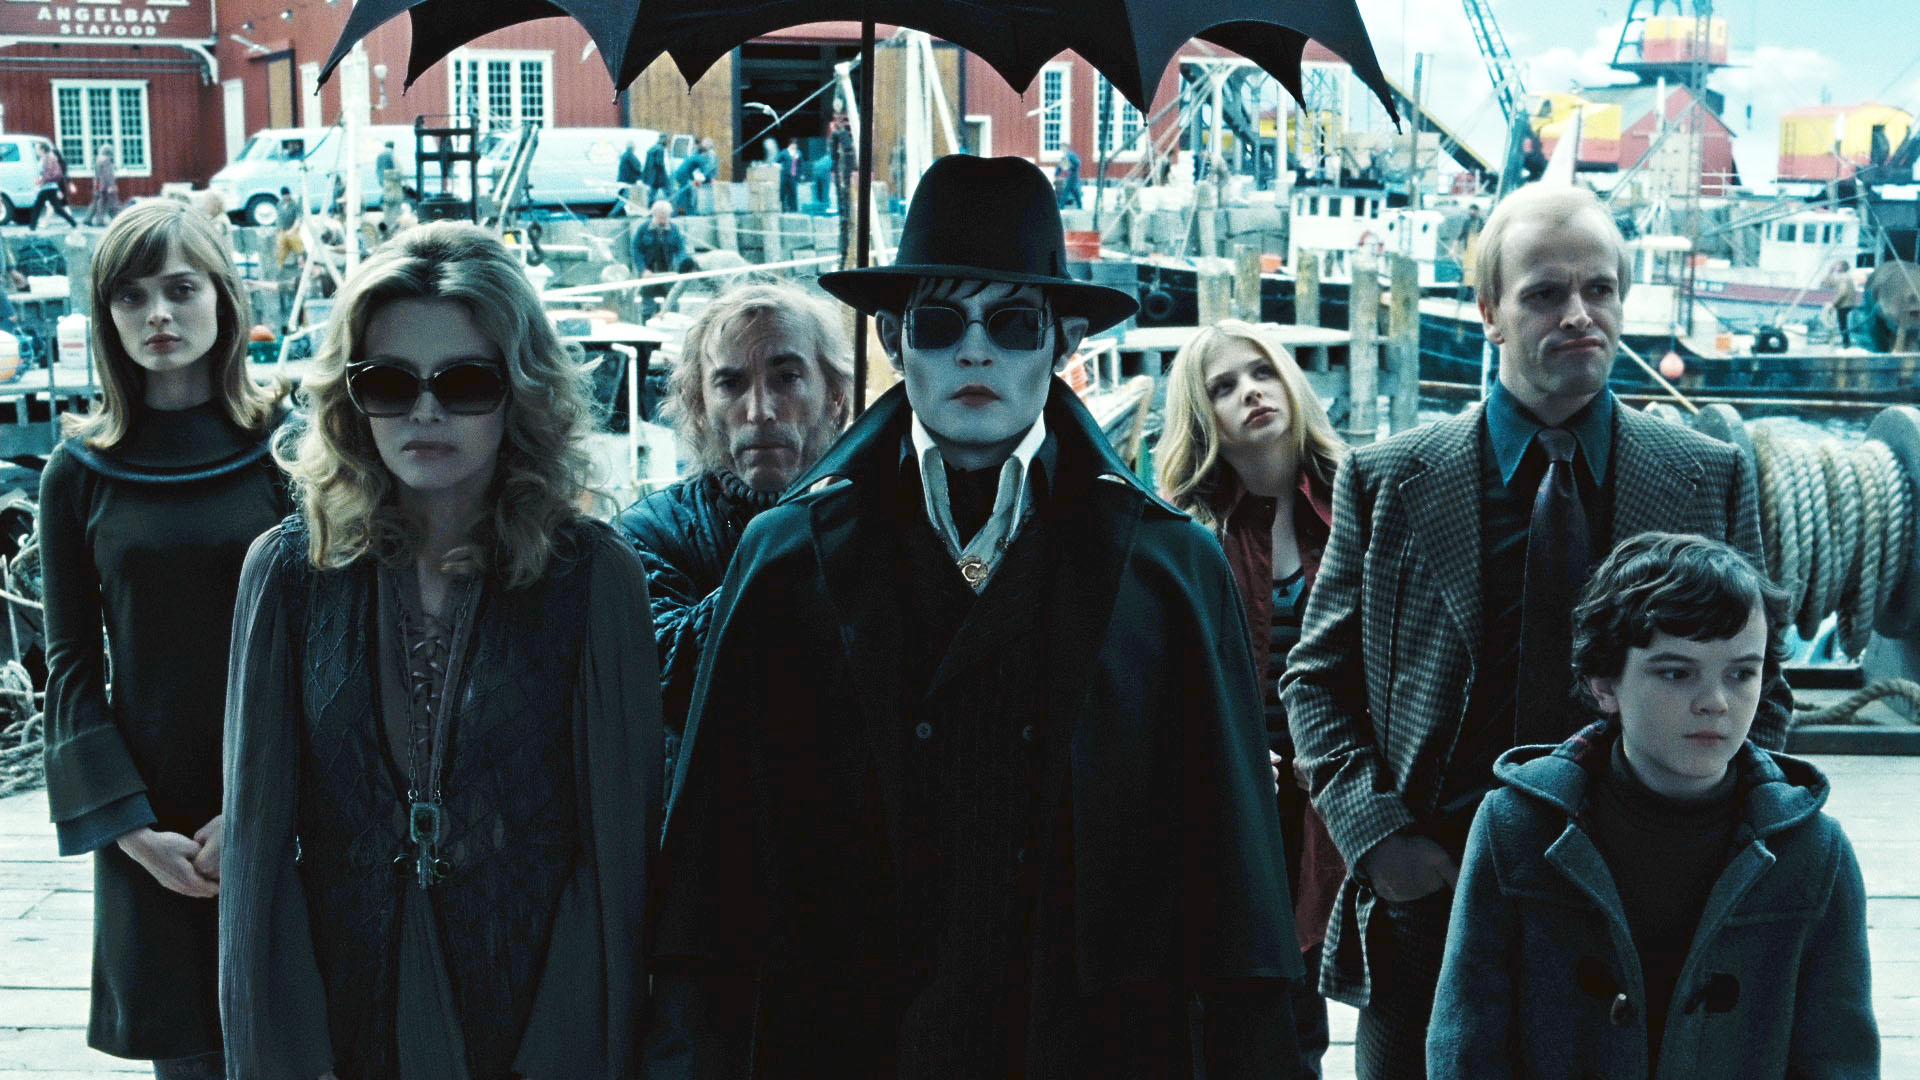 On video–Tim Burton revisits Dark Shadows | borg.com